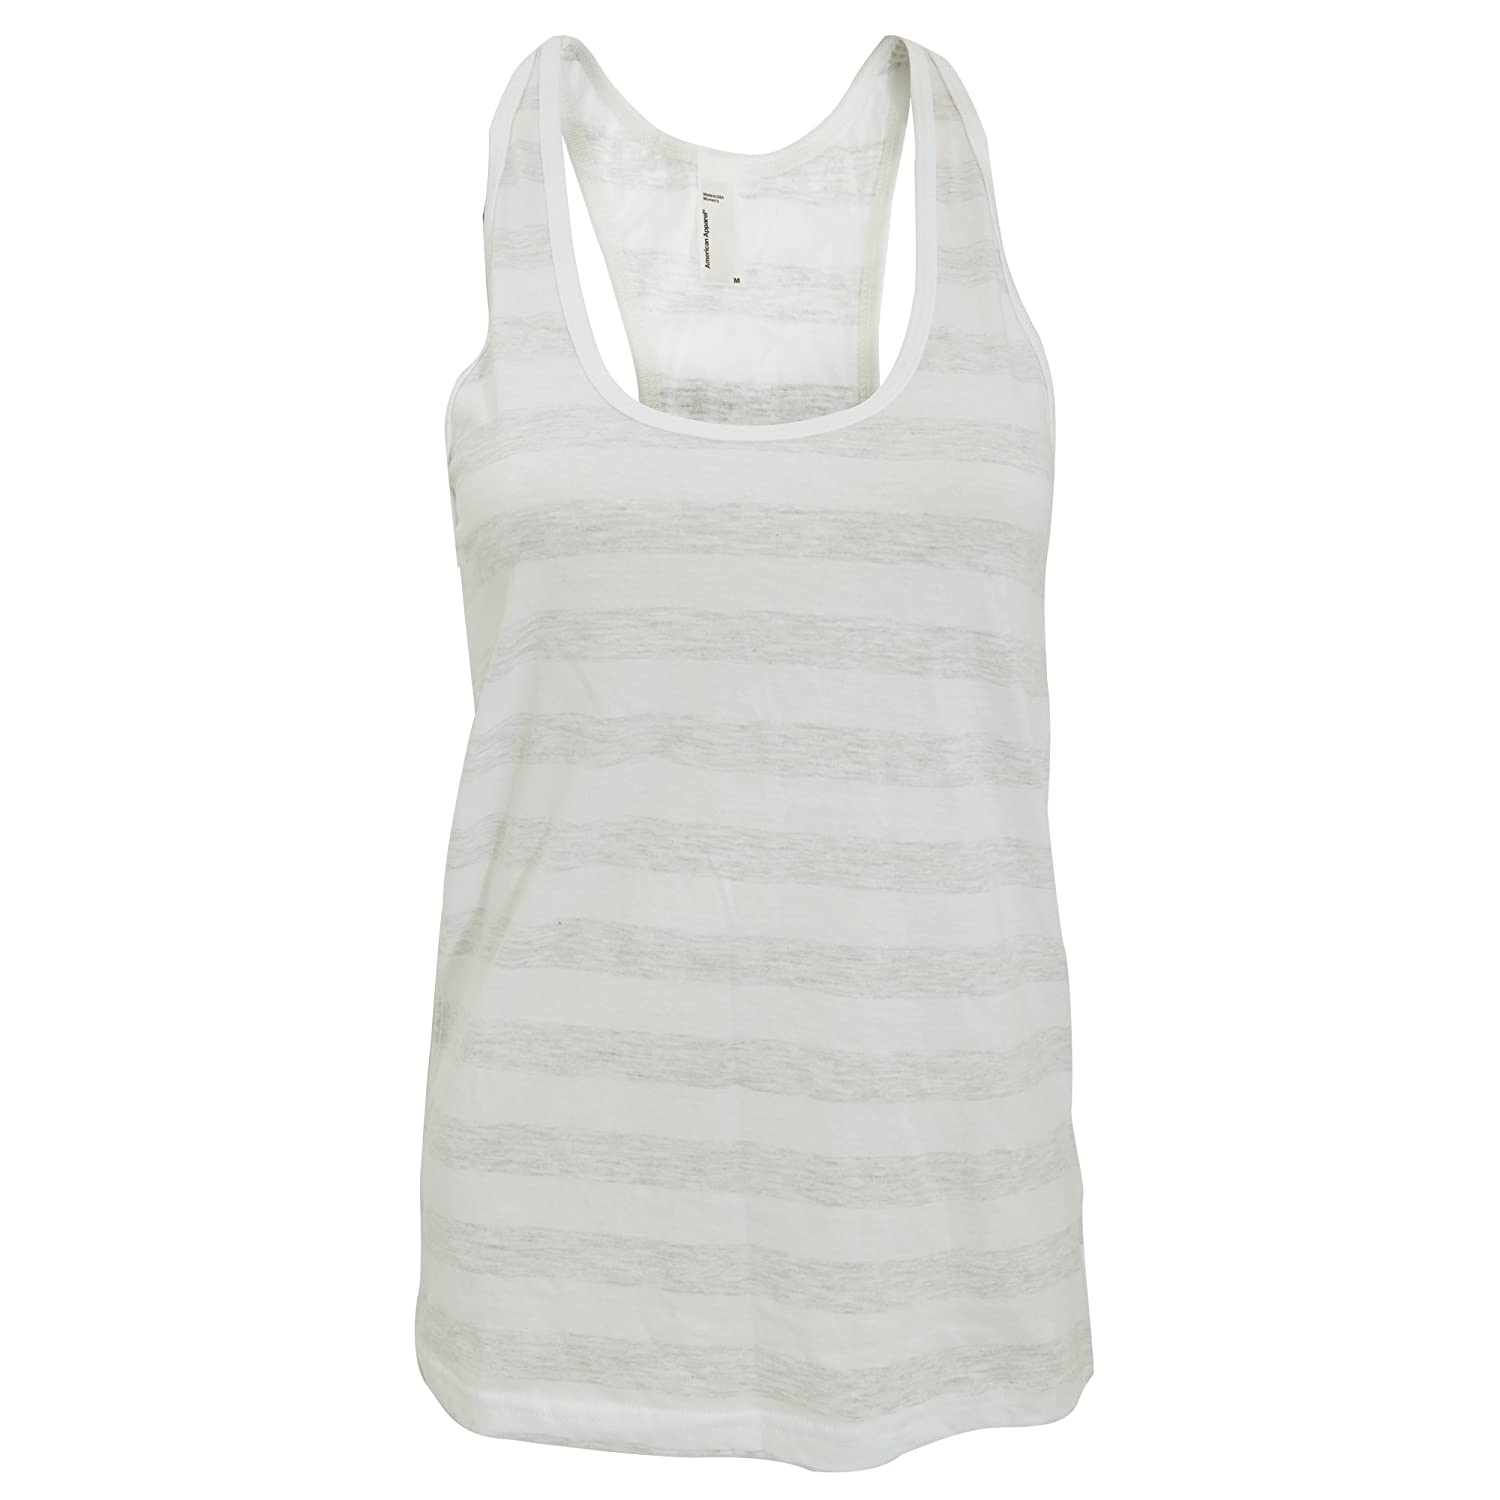 American Apparel Womens/Ladies Racerback Vest/Tank Top